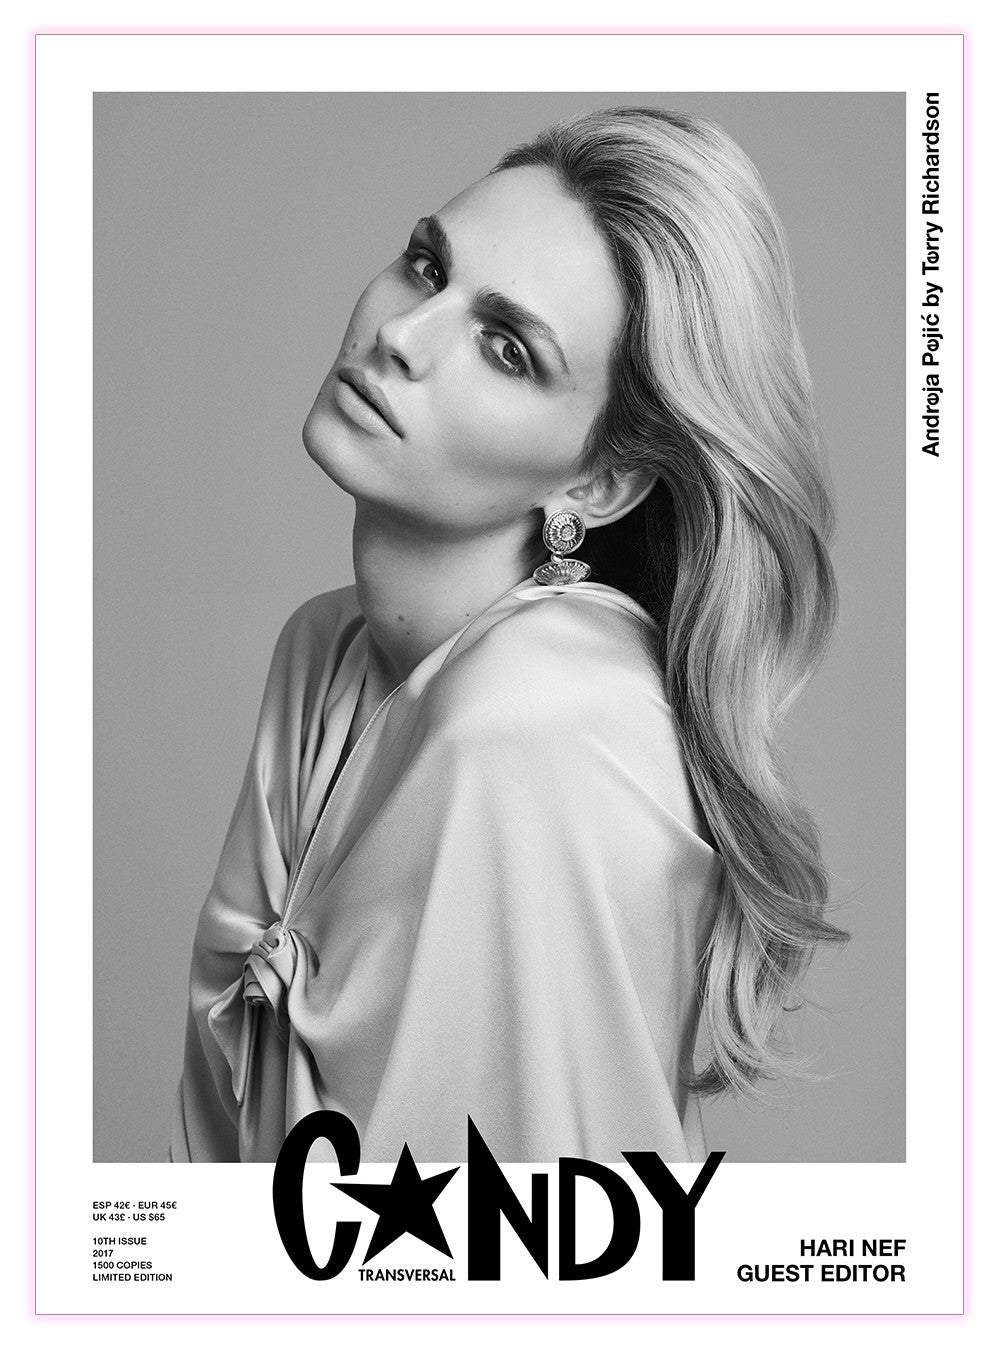 Candy 10 Guest Edited by Hari Nef - Claire de Rouen Books